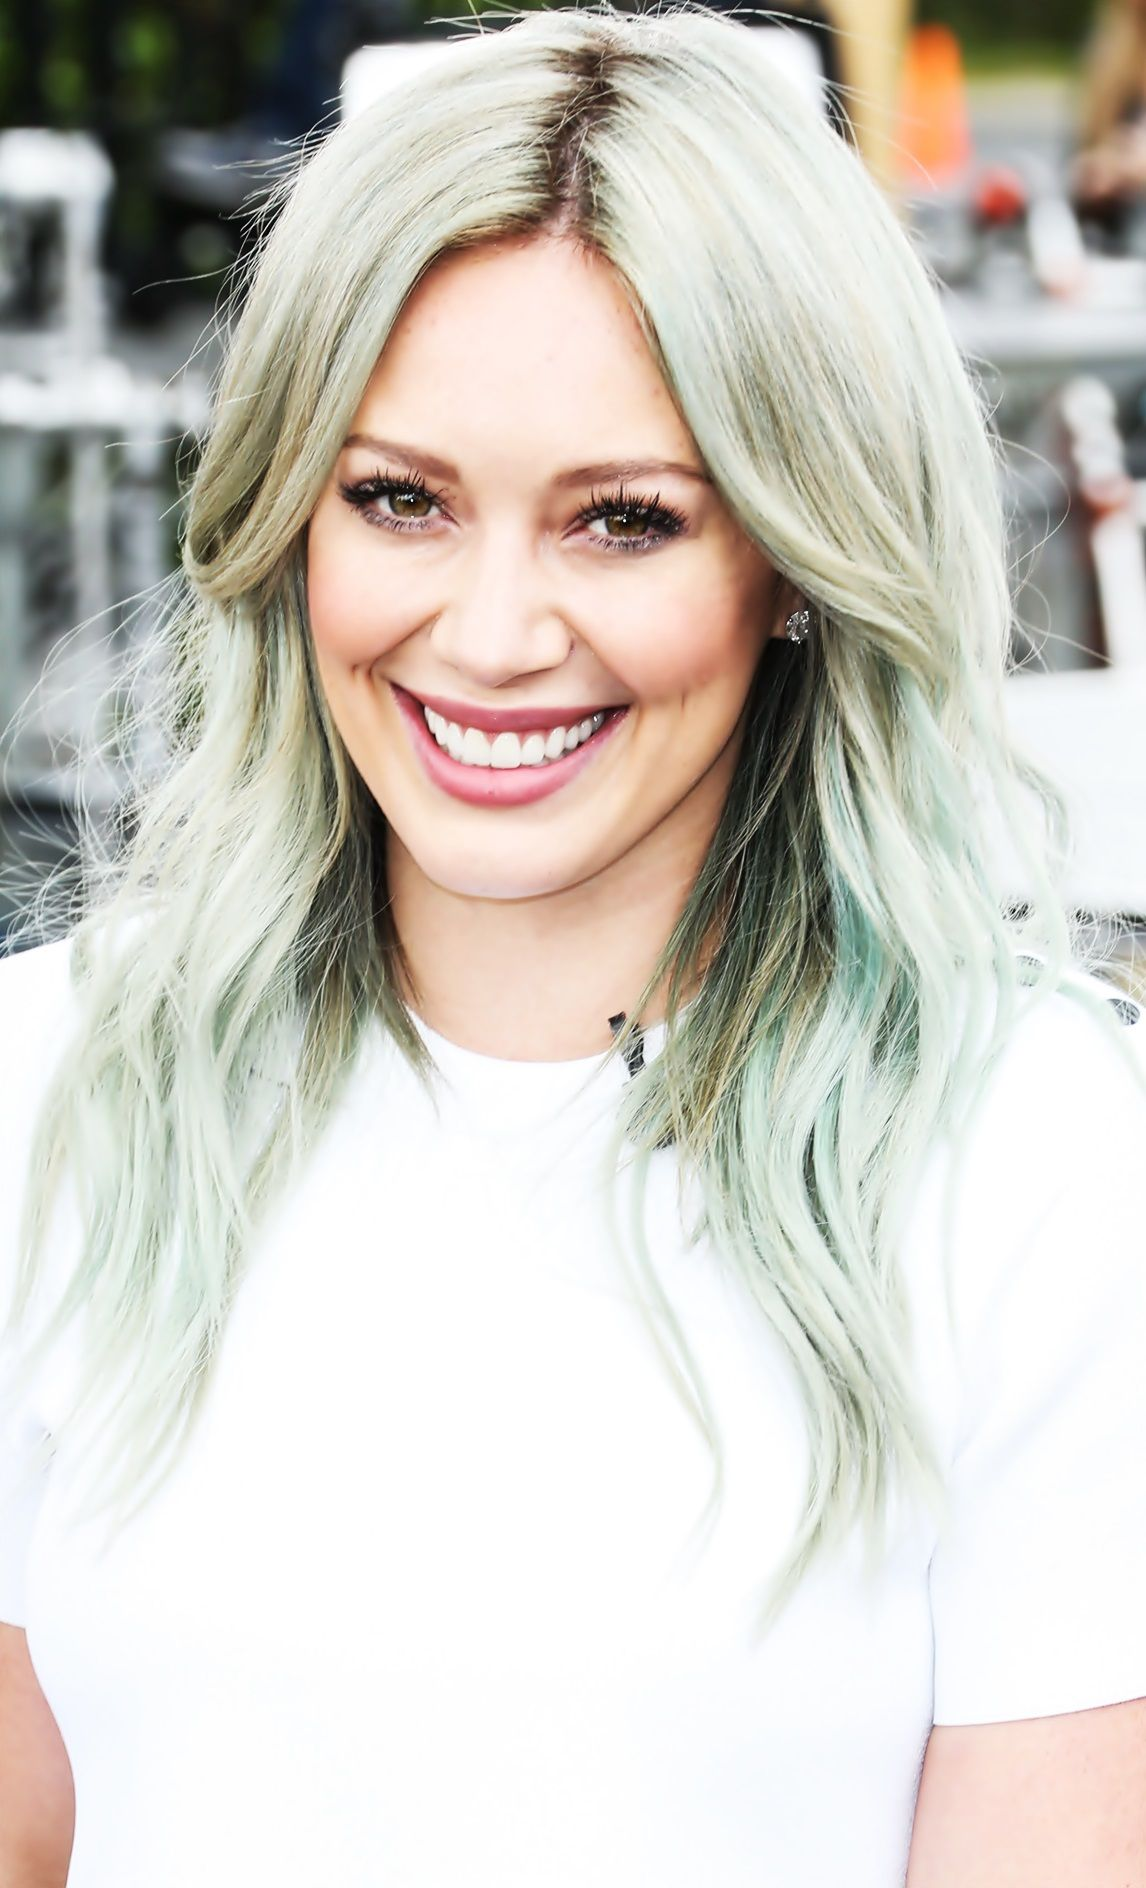 Pin by heather on hilary duff pinterest hilary duff celebrity